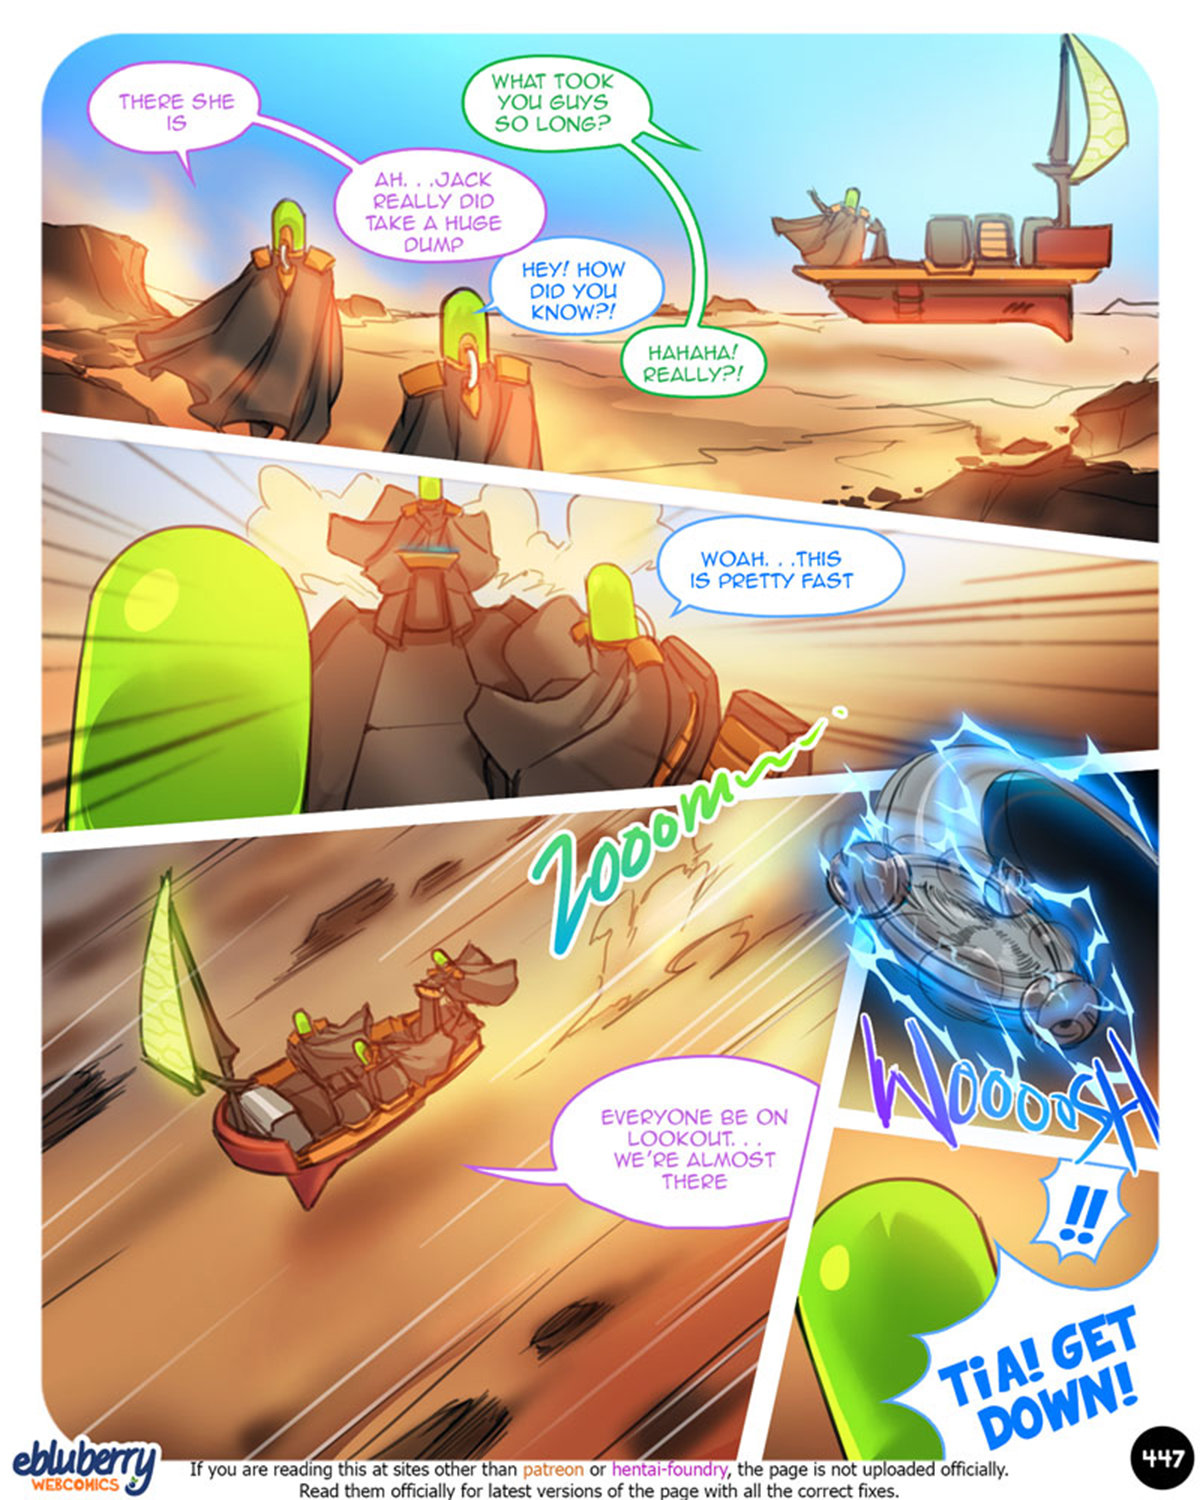 008 4 - S.EXpedition - [Ebluberry]. Part 22.